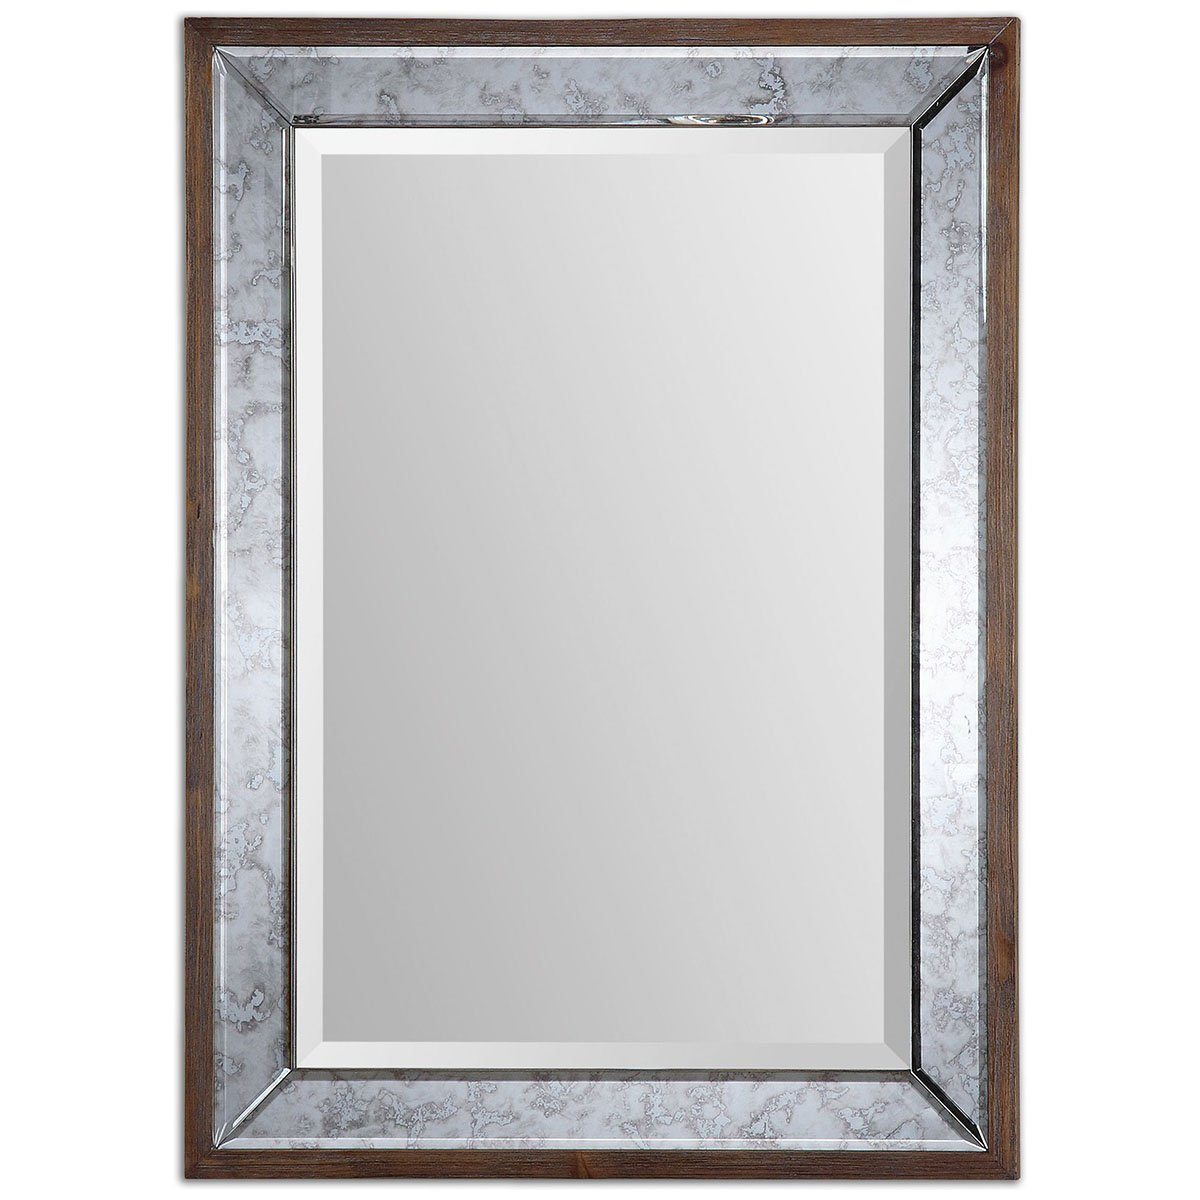 framed modern mirror. Framed Modern Mirror P